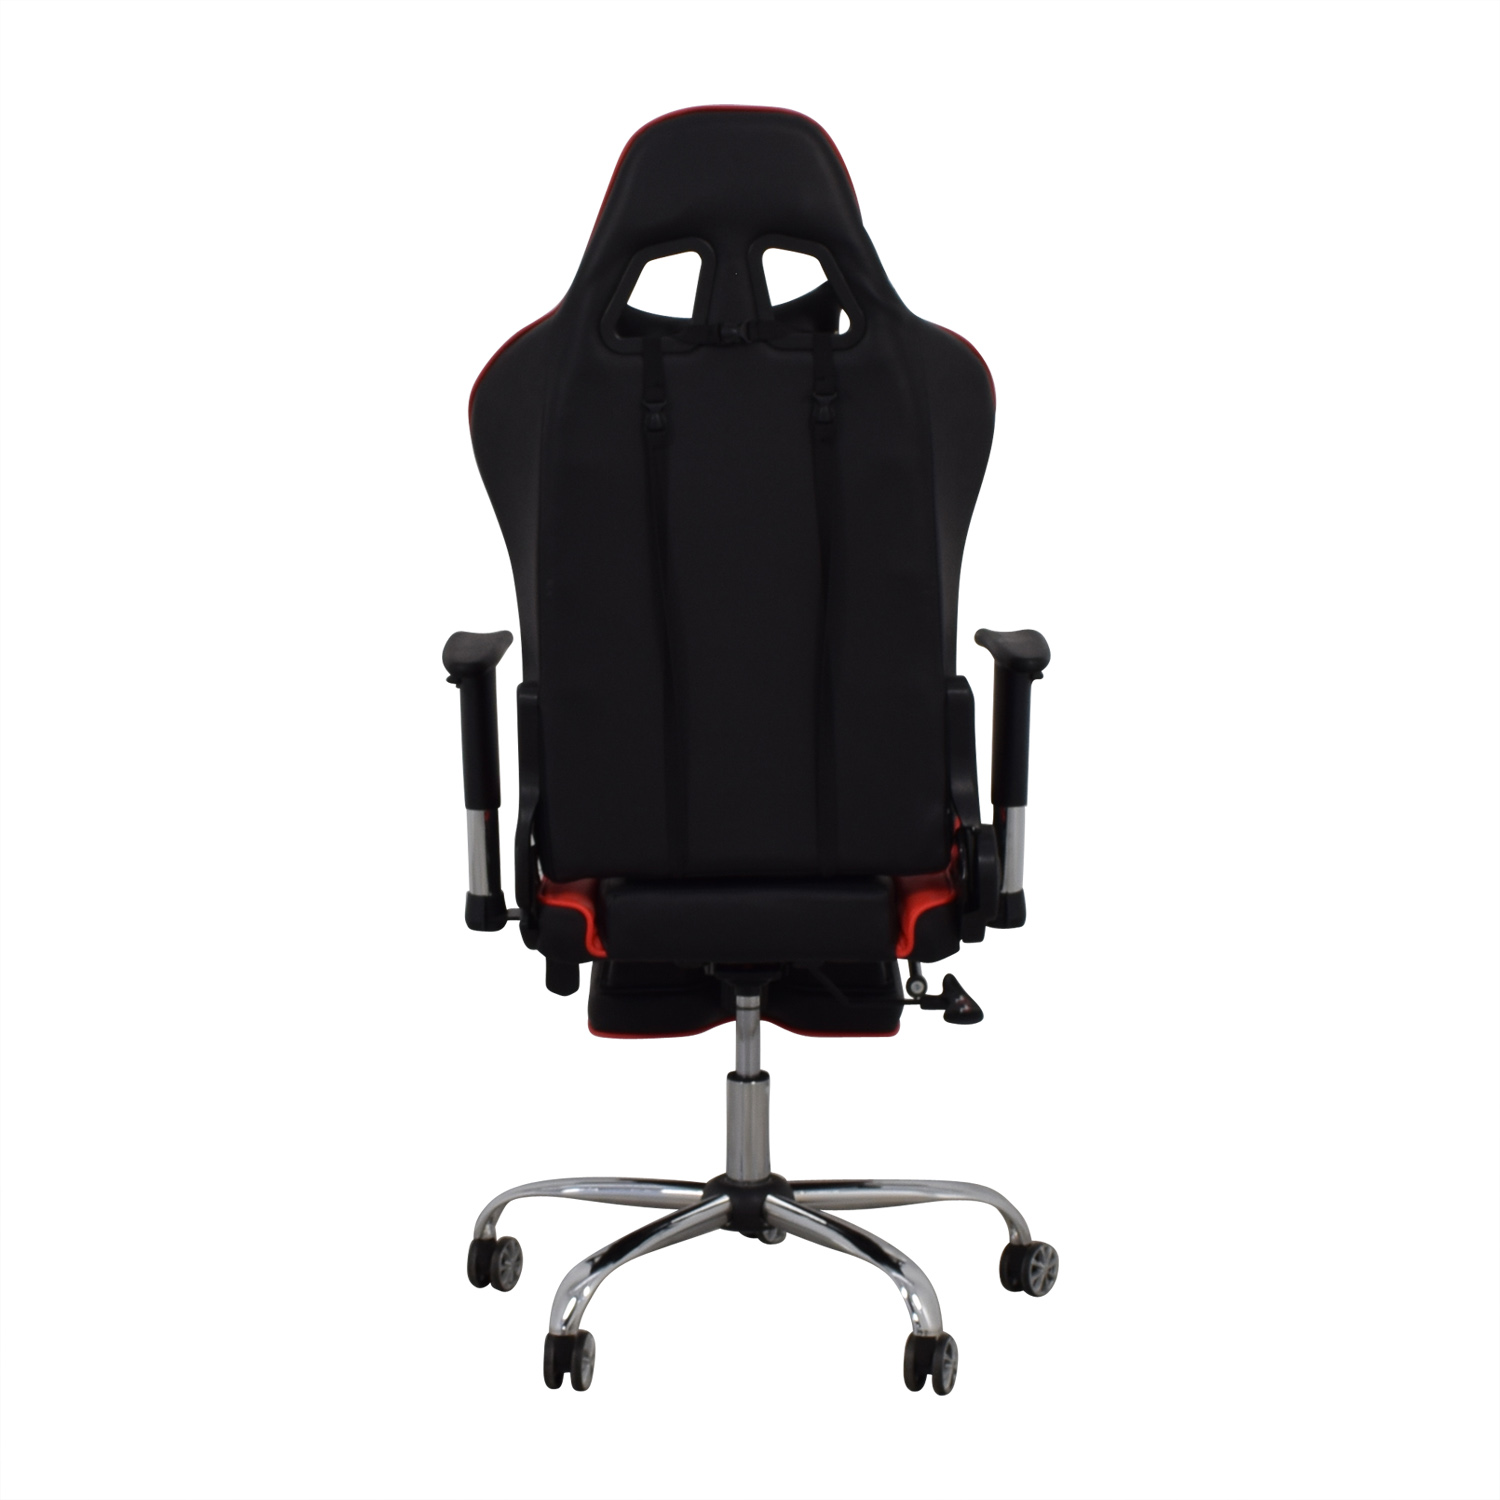 Merax Merax Black and Red Recliner Gaming Chair with Footrest Sofas